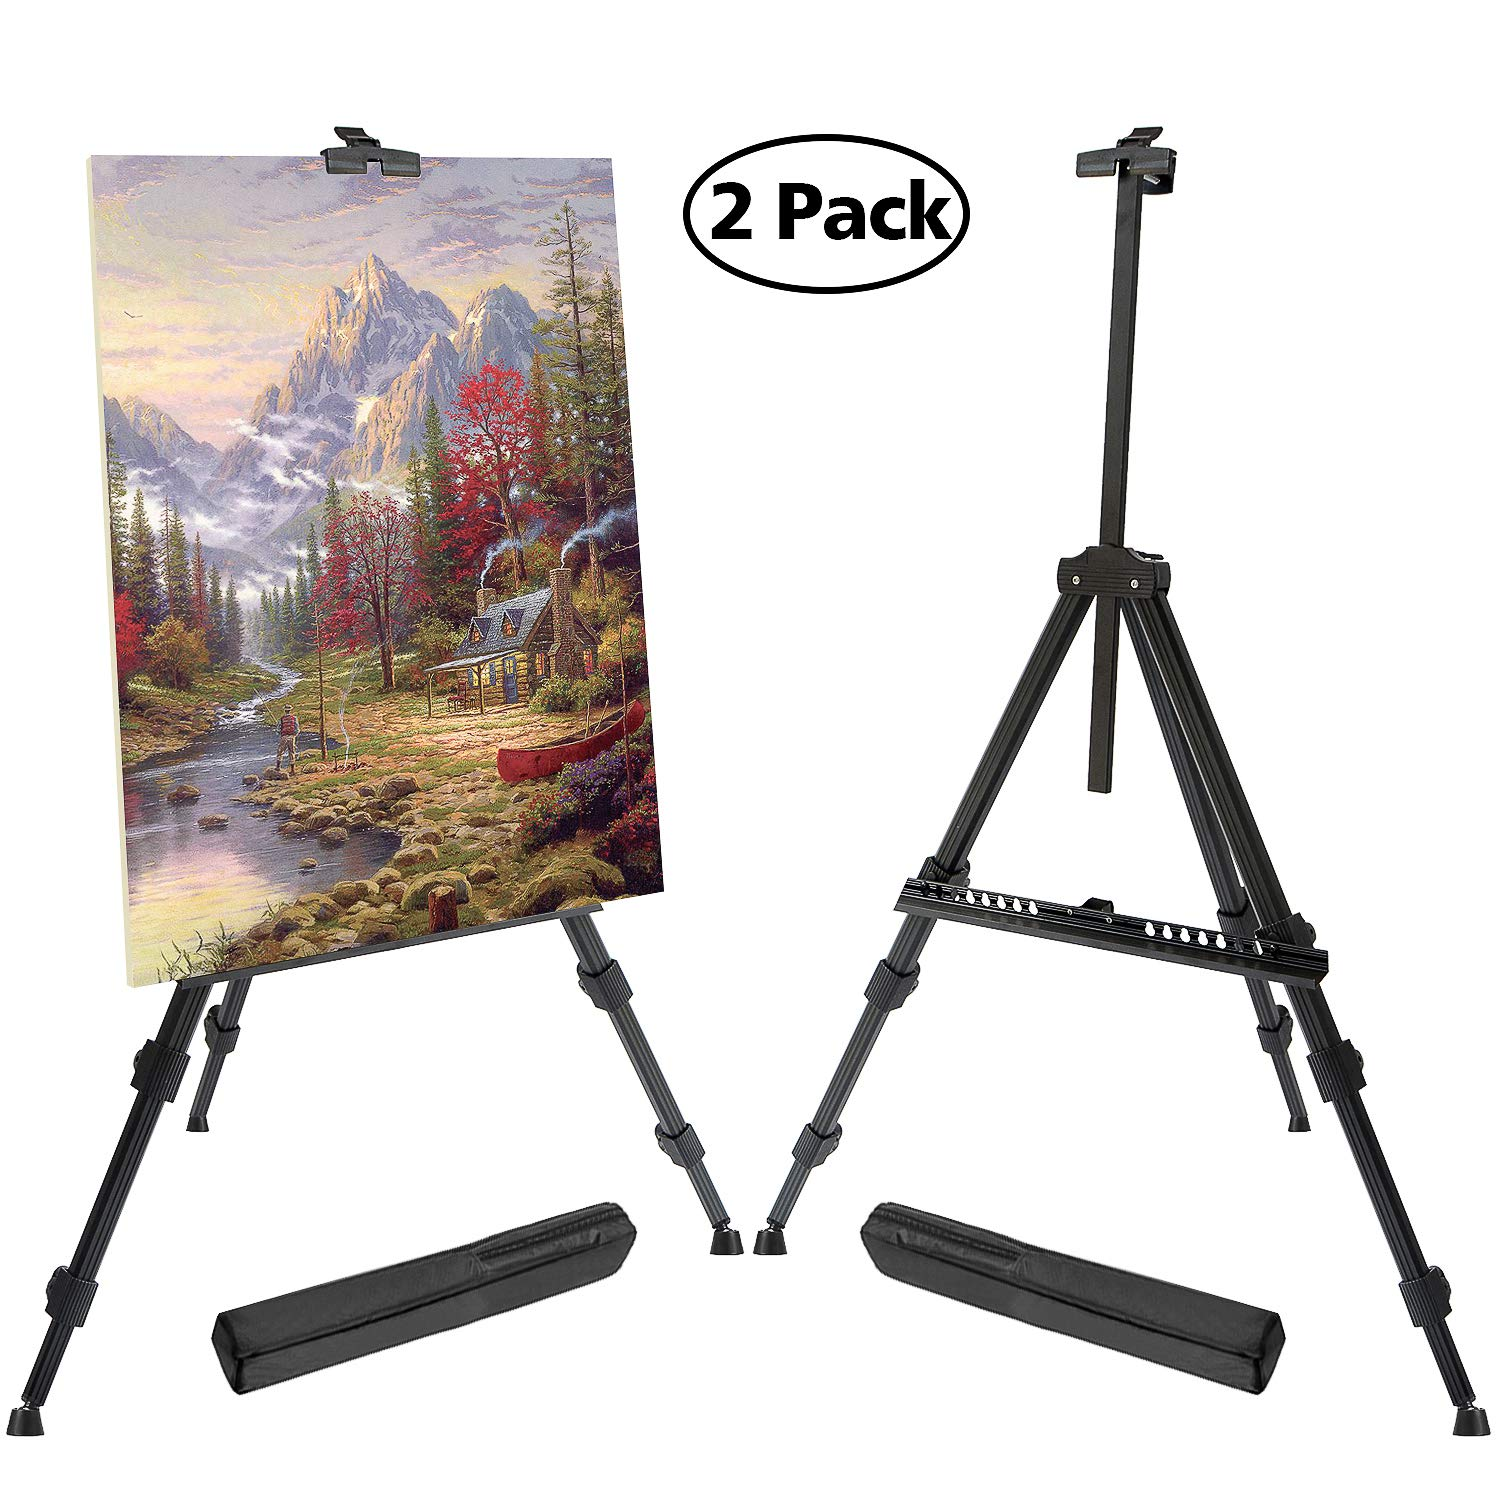 T-SIGN 72 Inches Tall Display Easel Stand, Aluminum Metal Tripod Art Easel Adjustable Height from 22-72 Inches, Extra Sturdy for Table-Top/Floor Painting, Drawing and Display with Bag, 2-Pack Black by T-SIGN